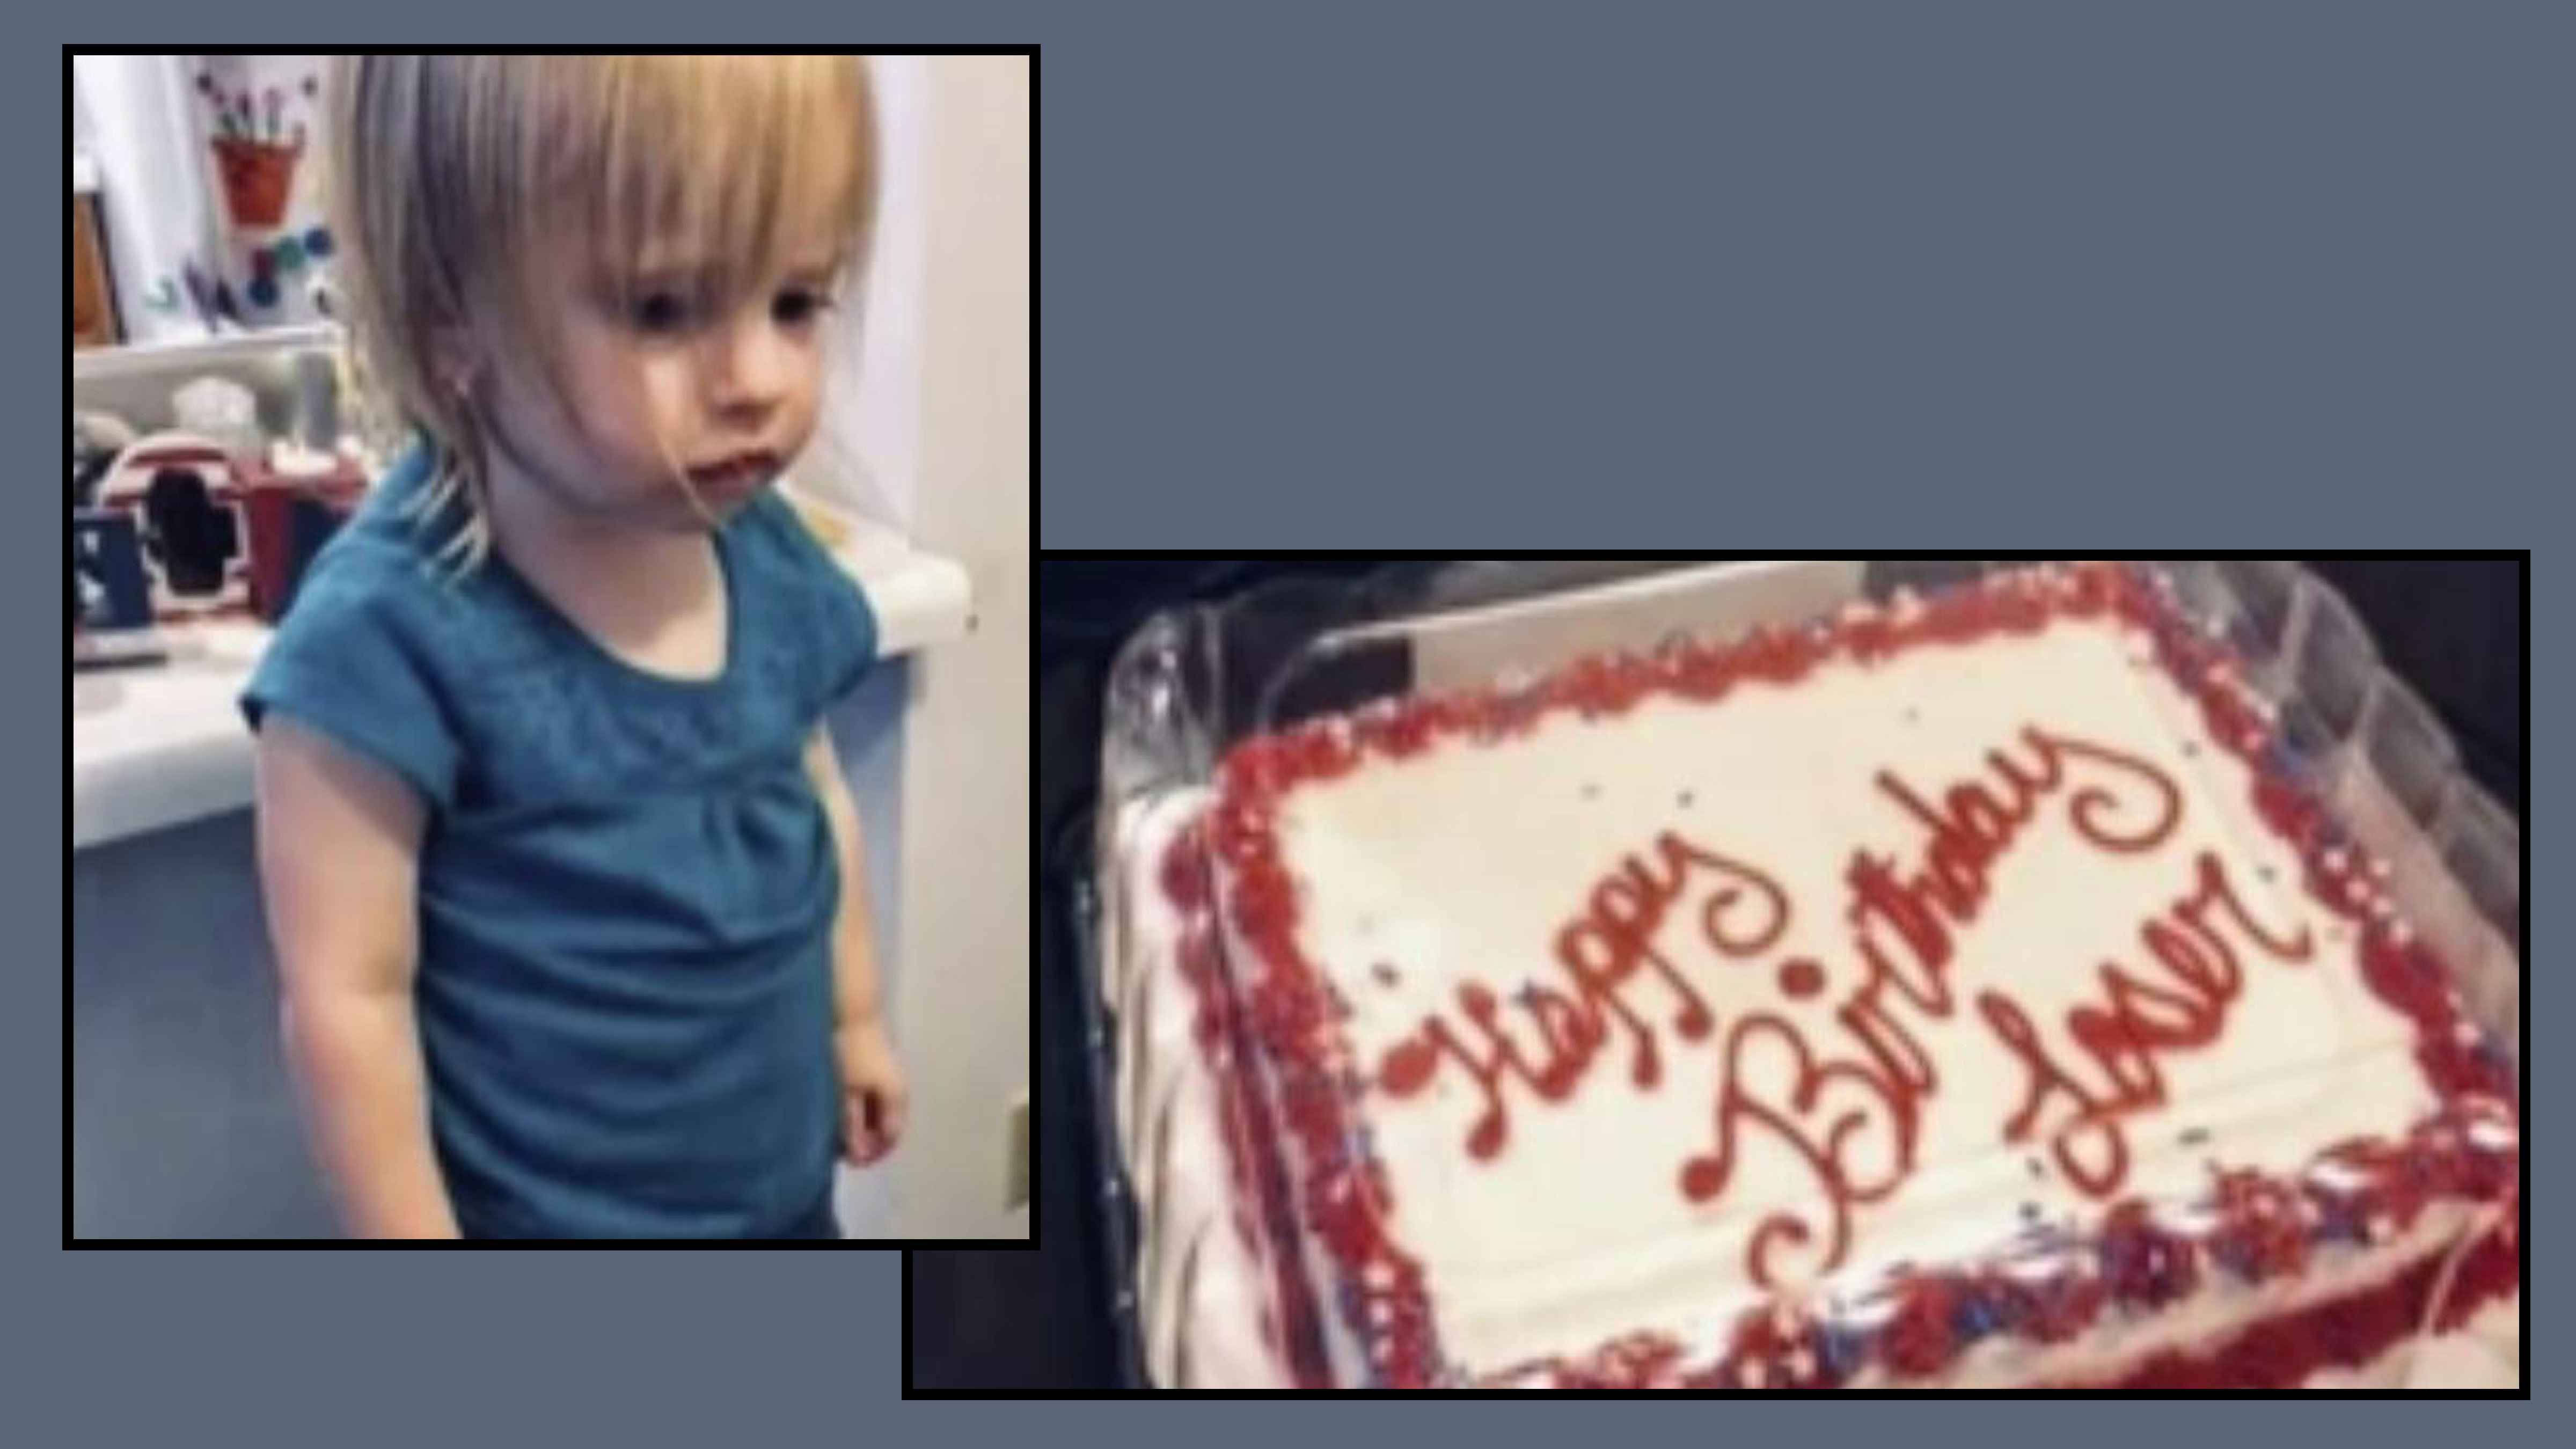 Walmart Mix Up Leaves Toddler With Happy Birthday Loser Birthday Cake Fox21 News Colorado